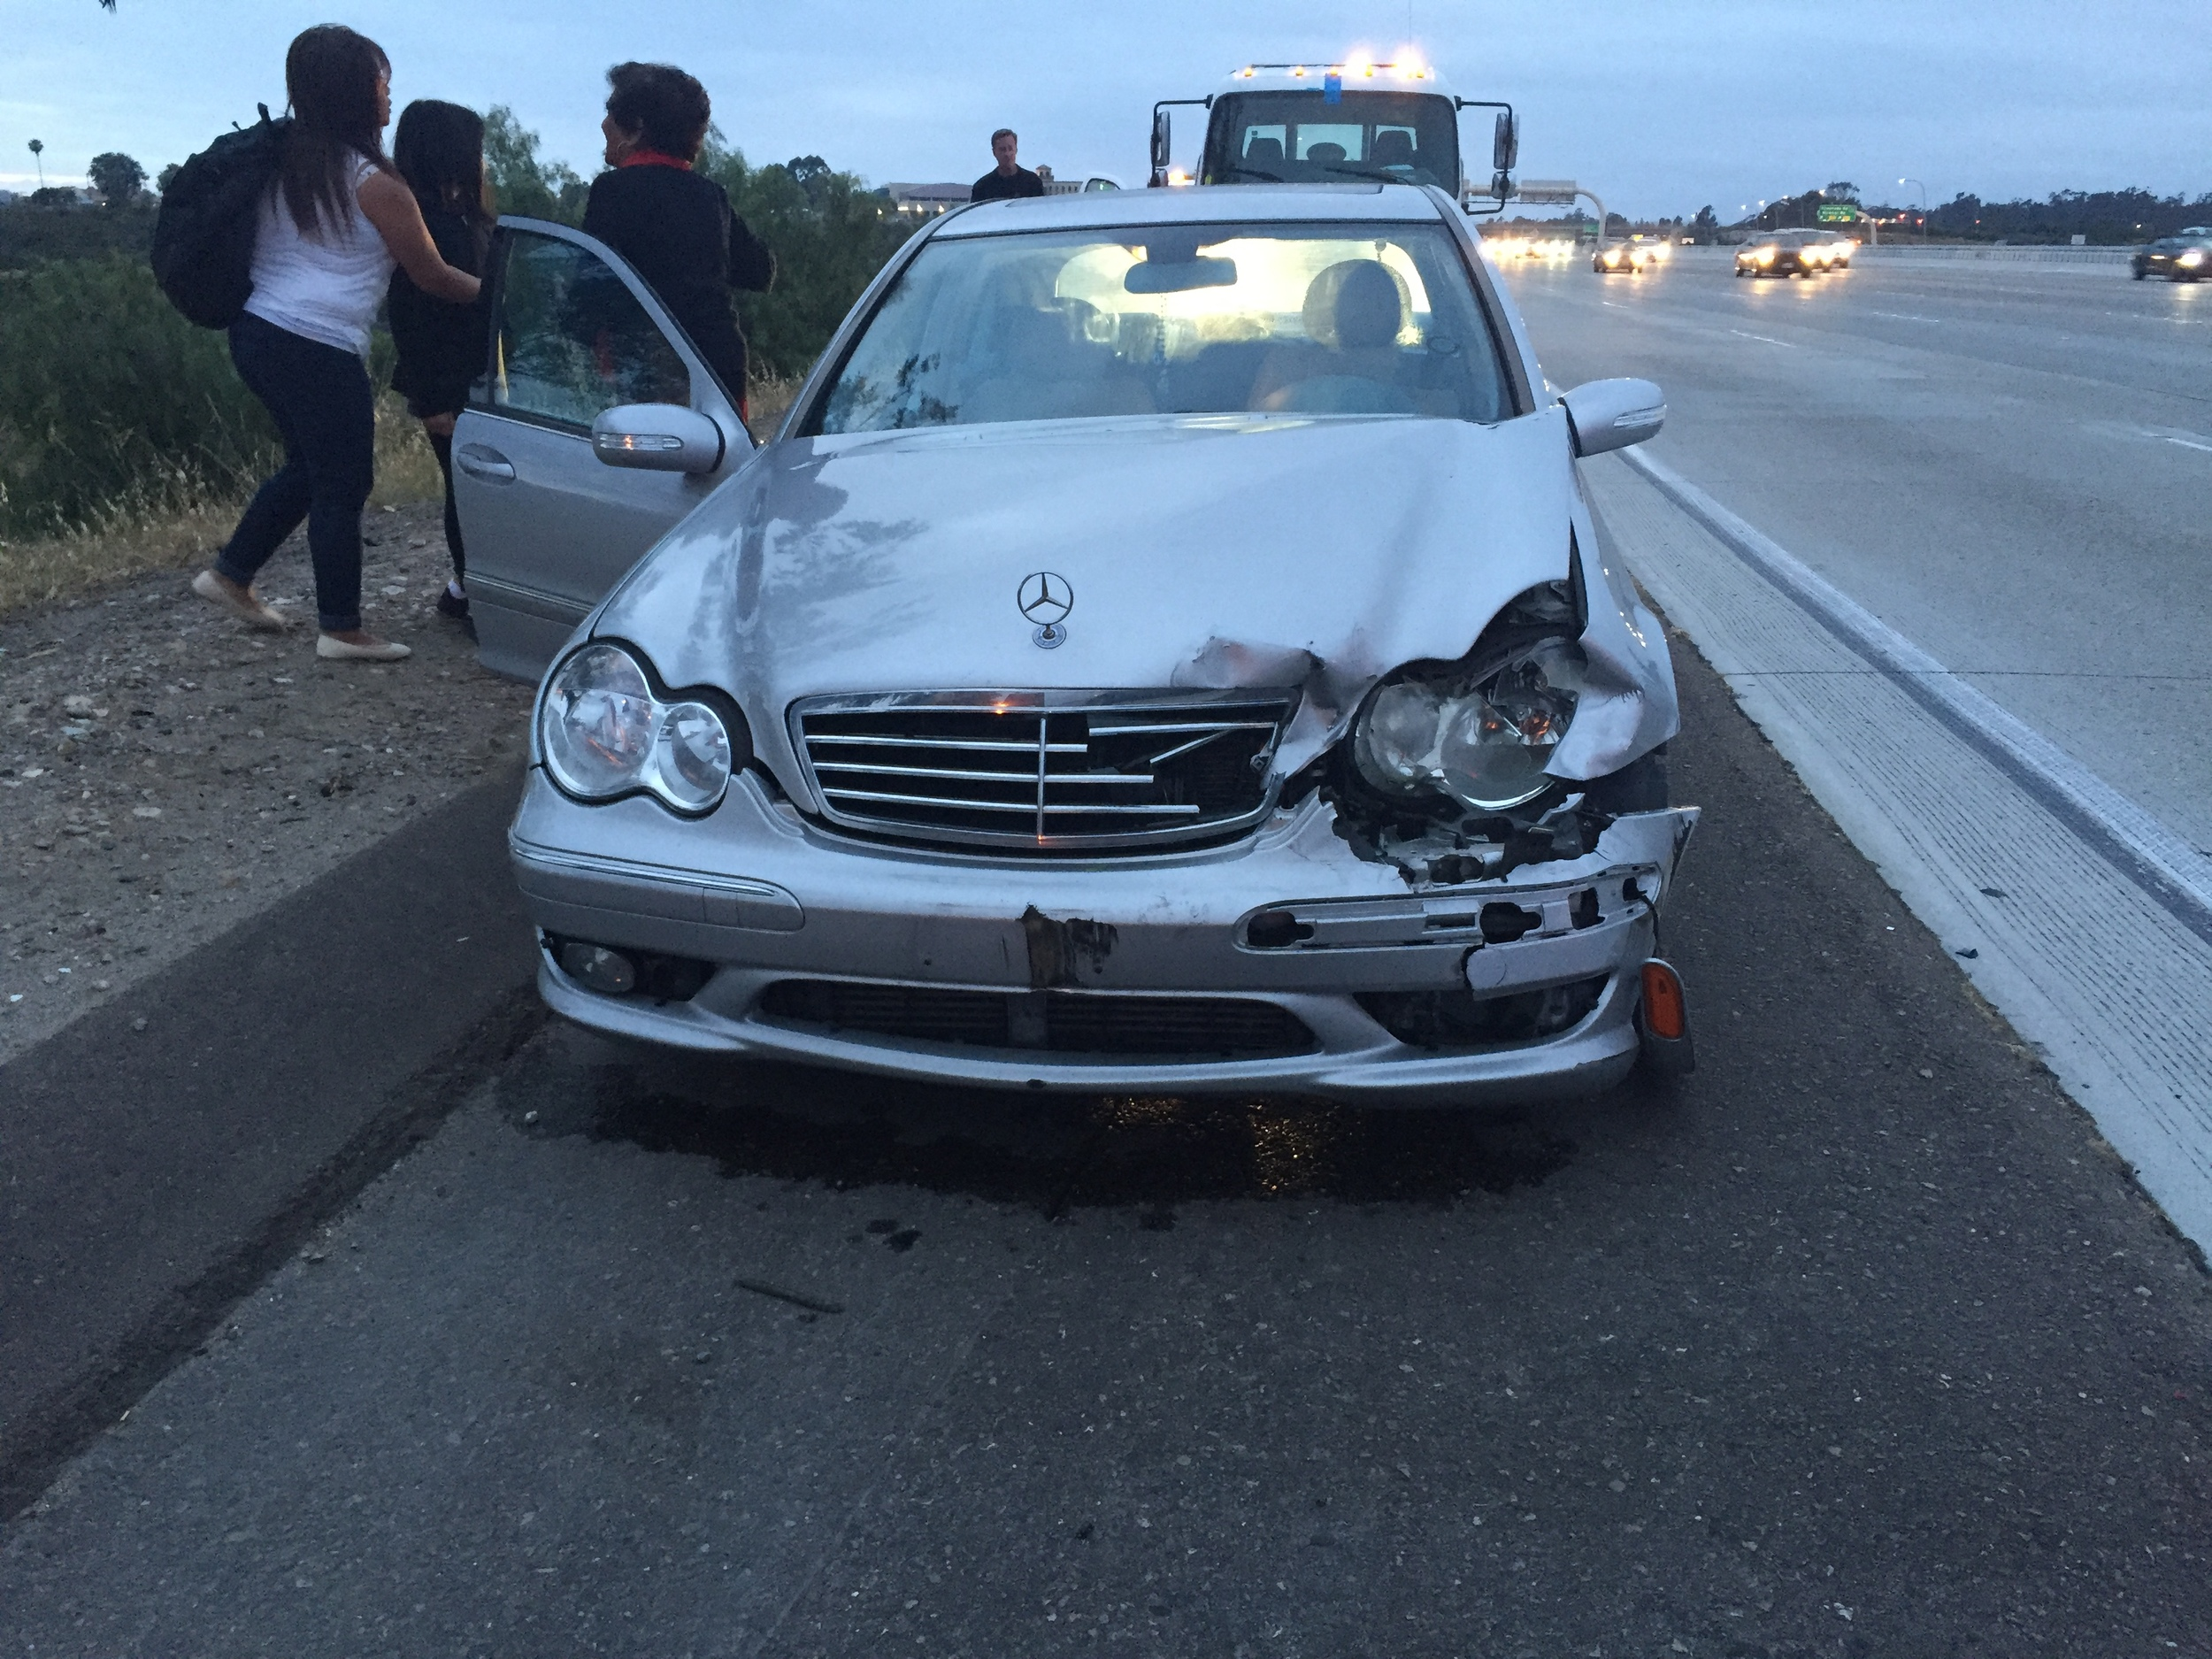 This Mercedes was the second car to hit me